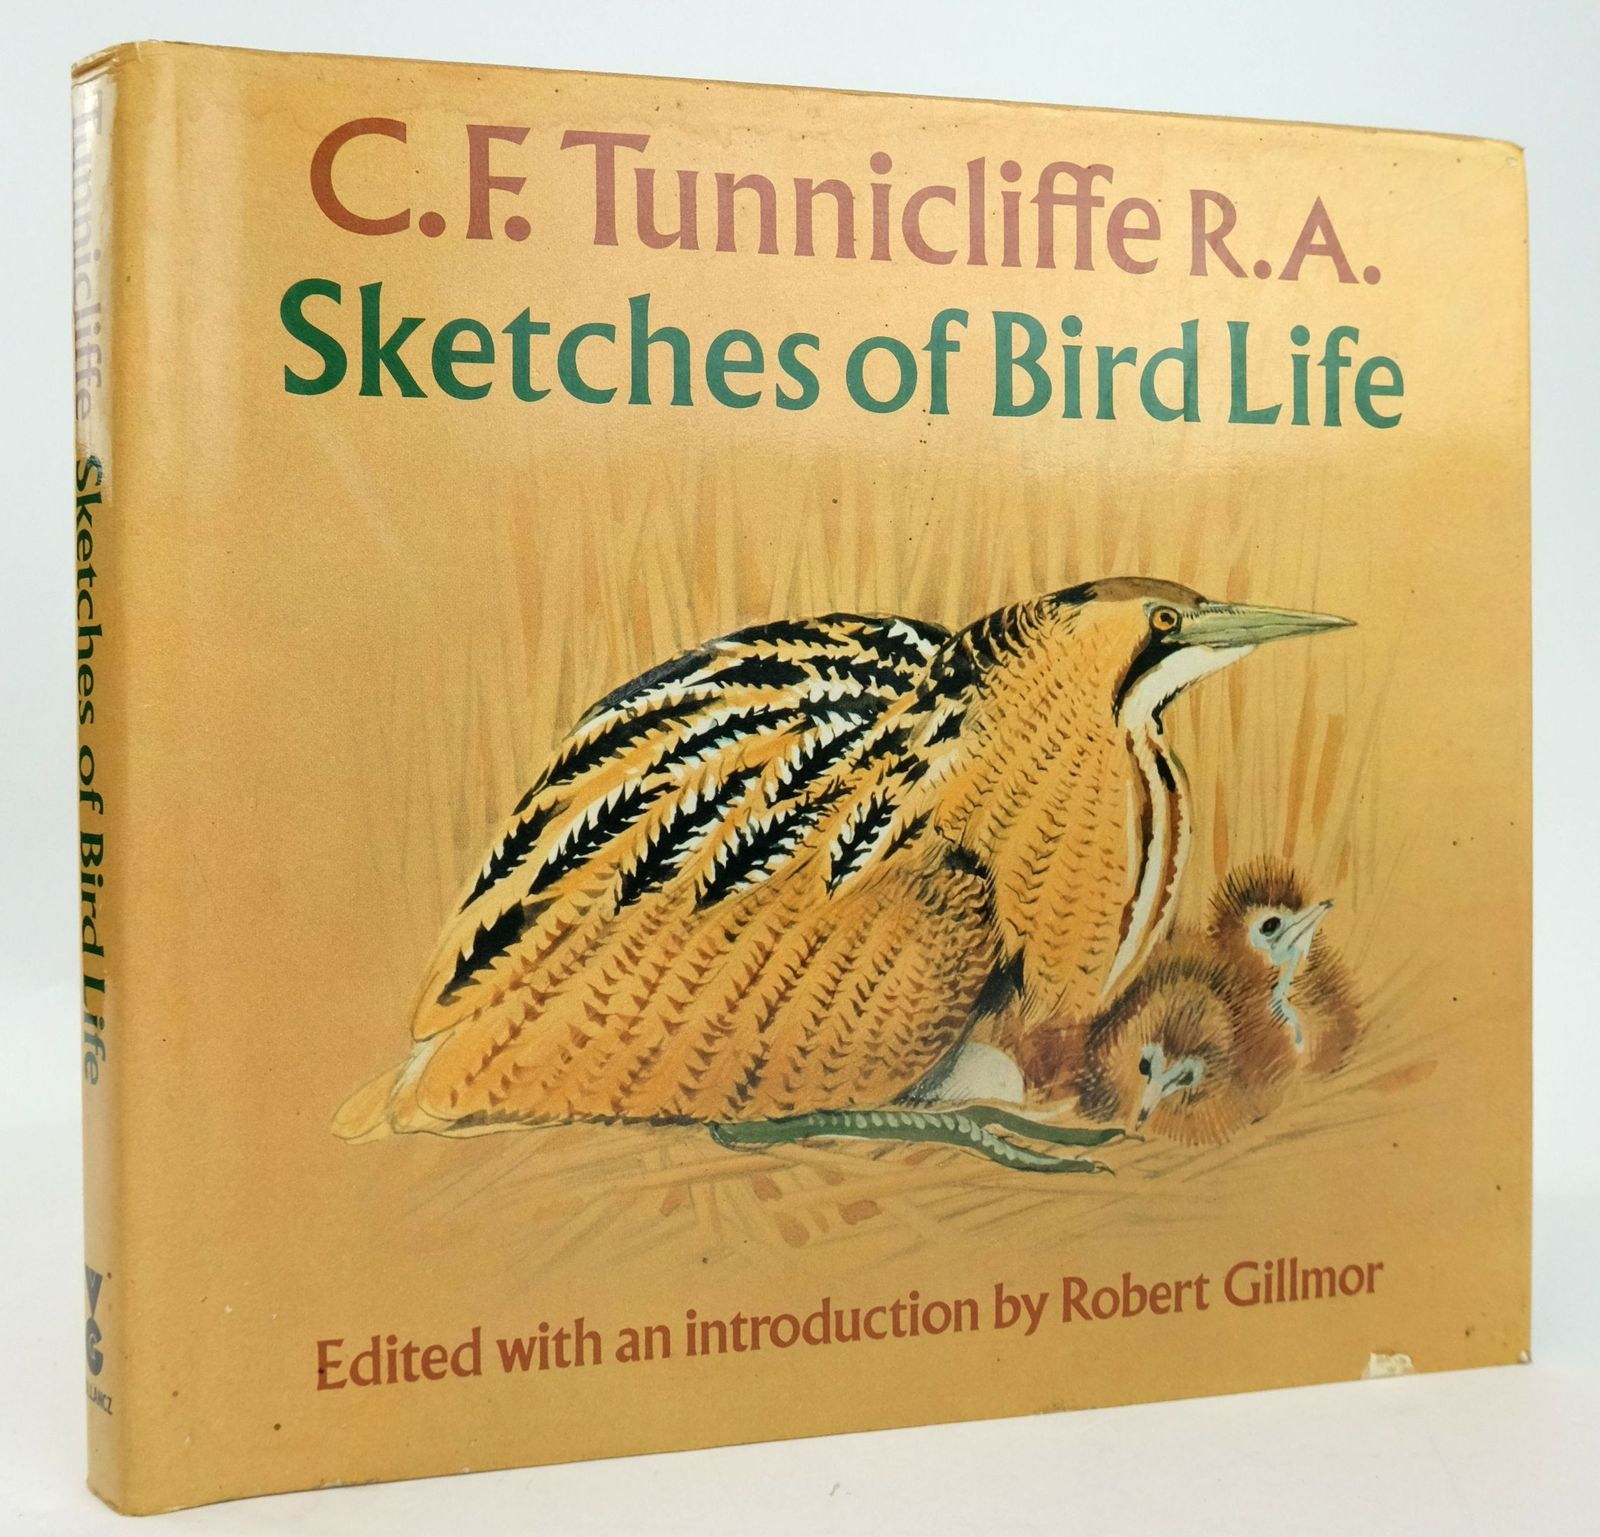 Photo of SKETCHES OF BIRD LIFE written by Gillmor, Robert illustrated by Tunnicliffe, C.F. published by Victor Gollancz (STOCK CODE: 1820181)  for sale by Stella & Rose's Books